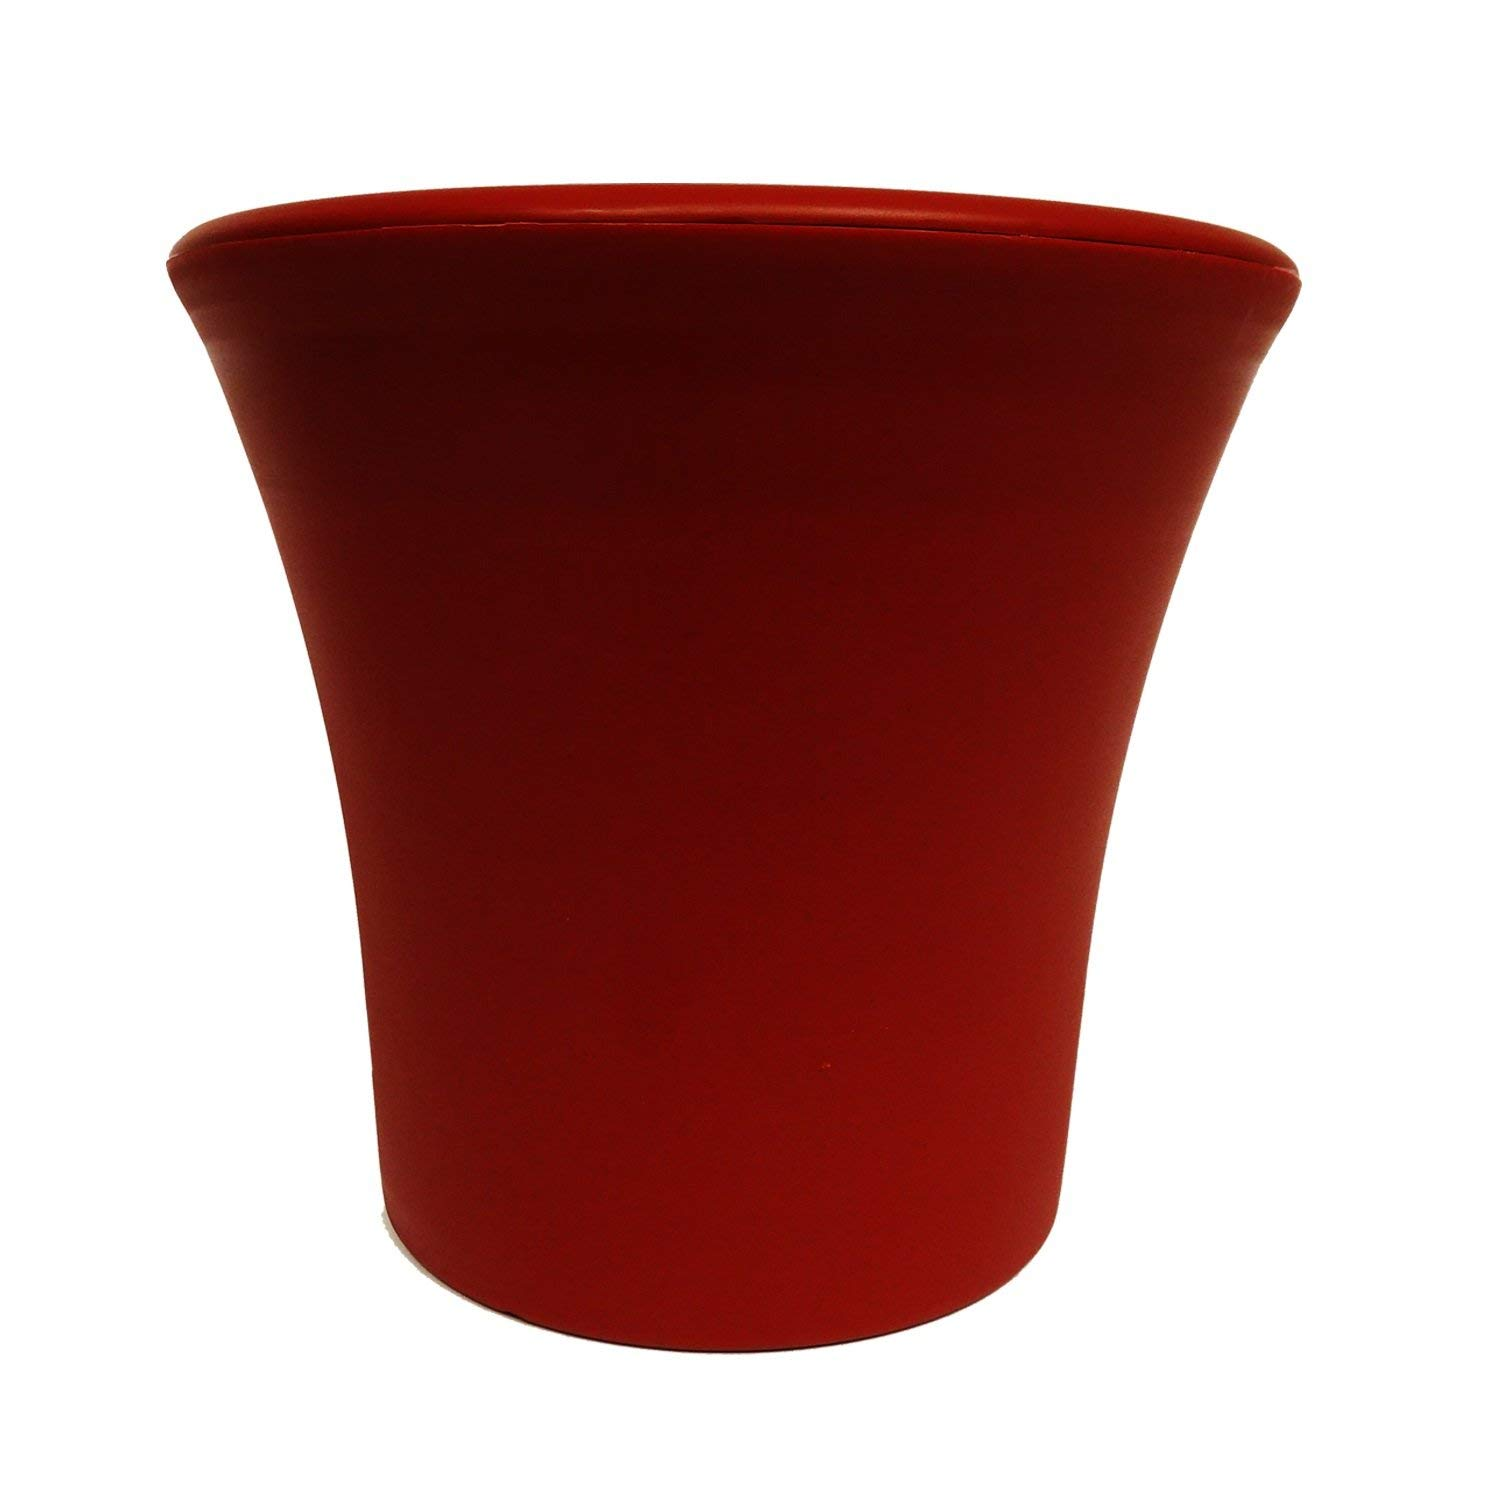 Misco Blossom Collection Modern Round Self-Watering Planter, 6-Inch Diameter, Red Sedona